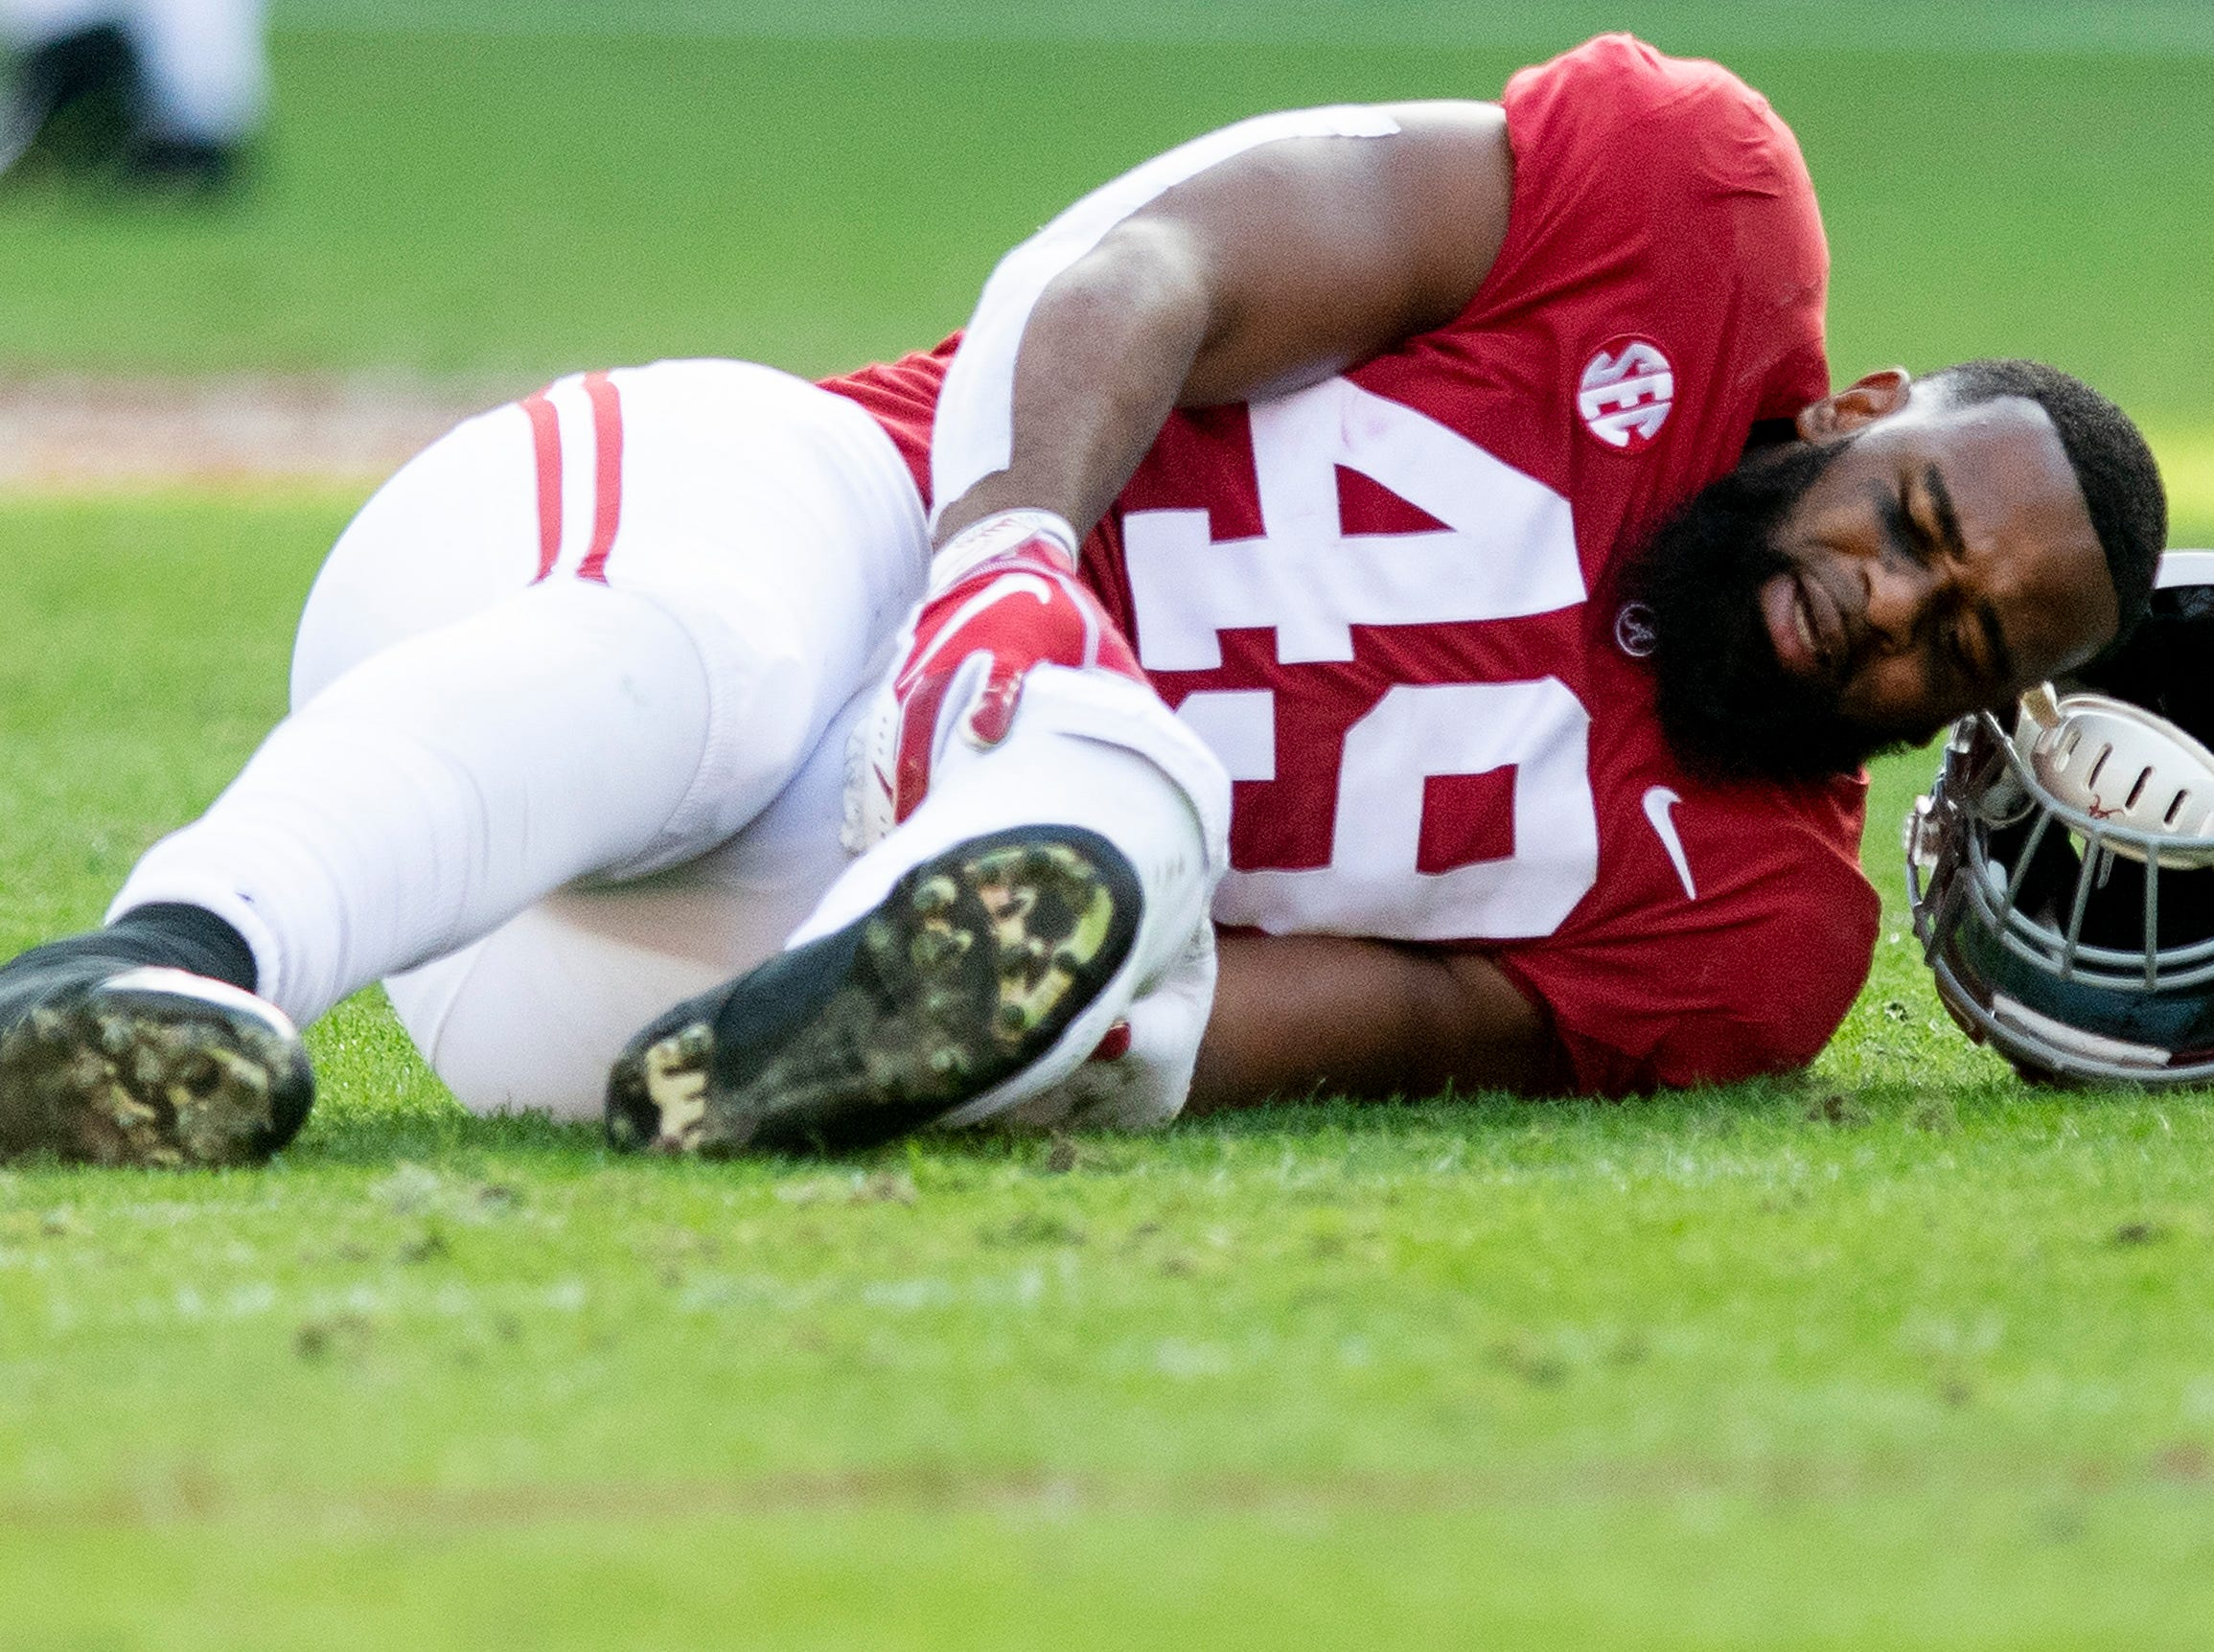 Alabama defensive lineman Isaiah Buggs (49) is injured against Auburn in first half action during the Iron Bowl at Bryant-Denny Stadium in Tuscaloosa, Ala., on Saturday November 24, 2018.